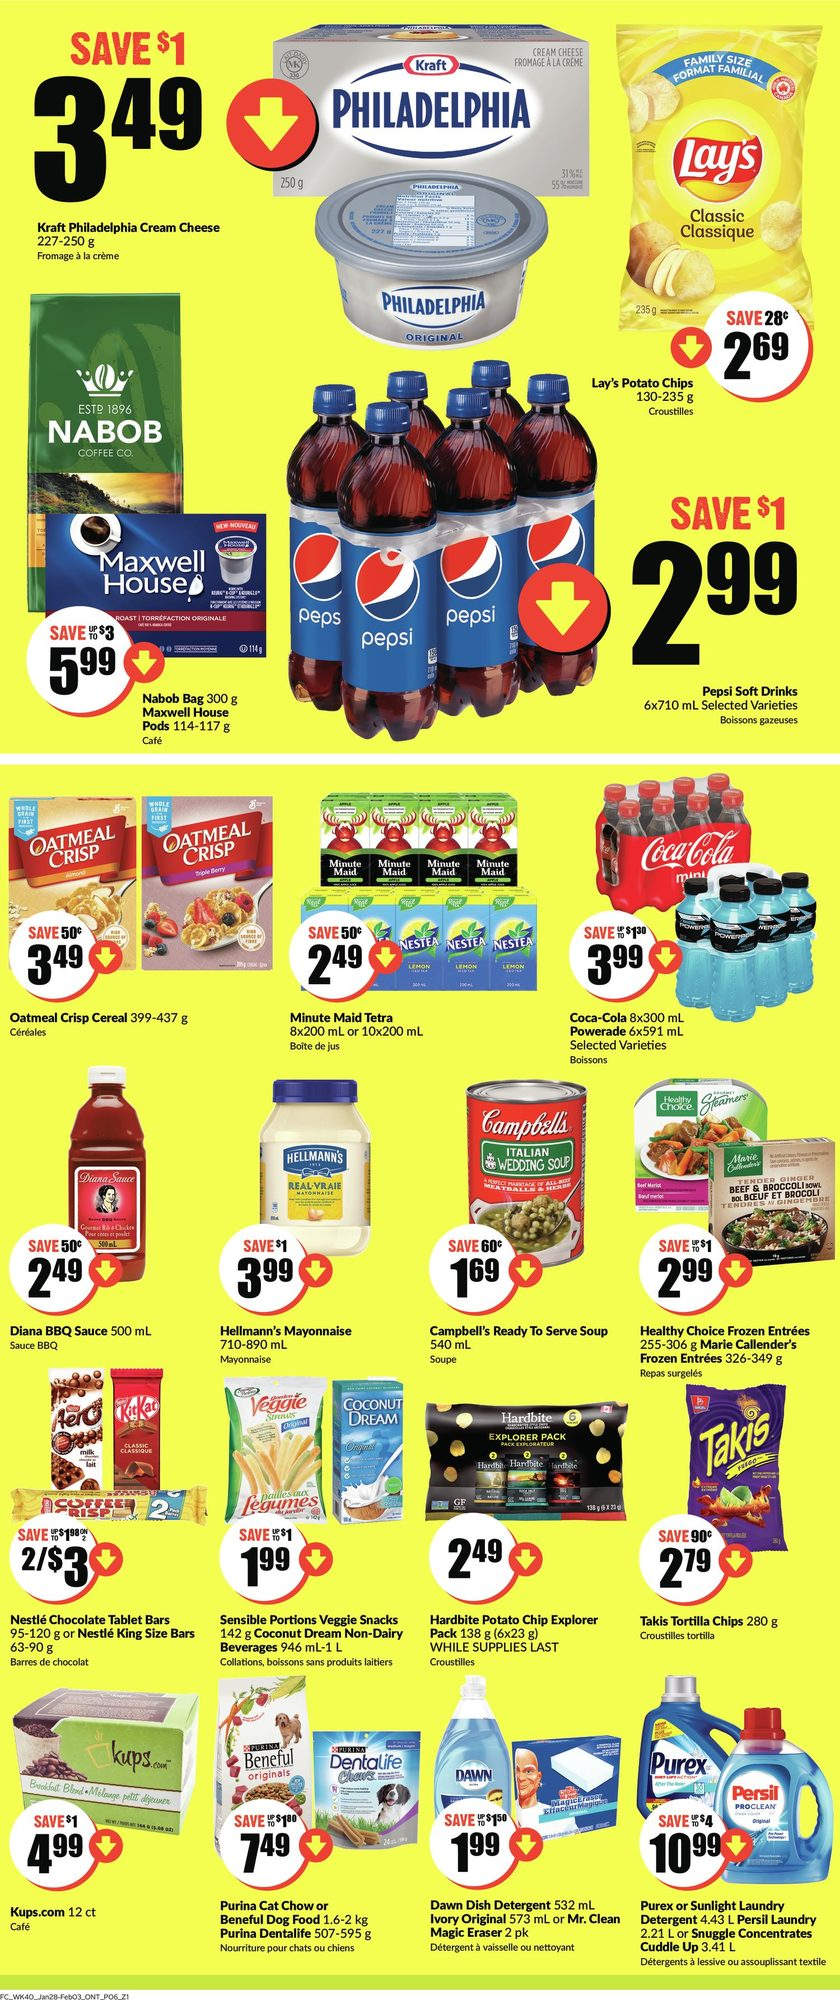 FreshCo - Weekly Flyer Specials - Page 6